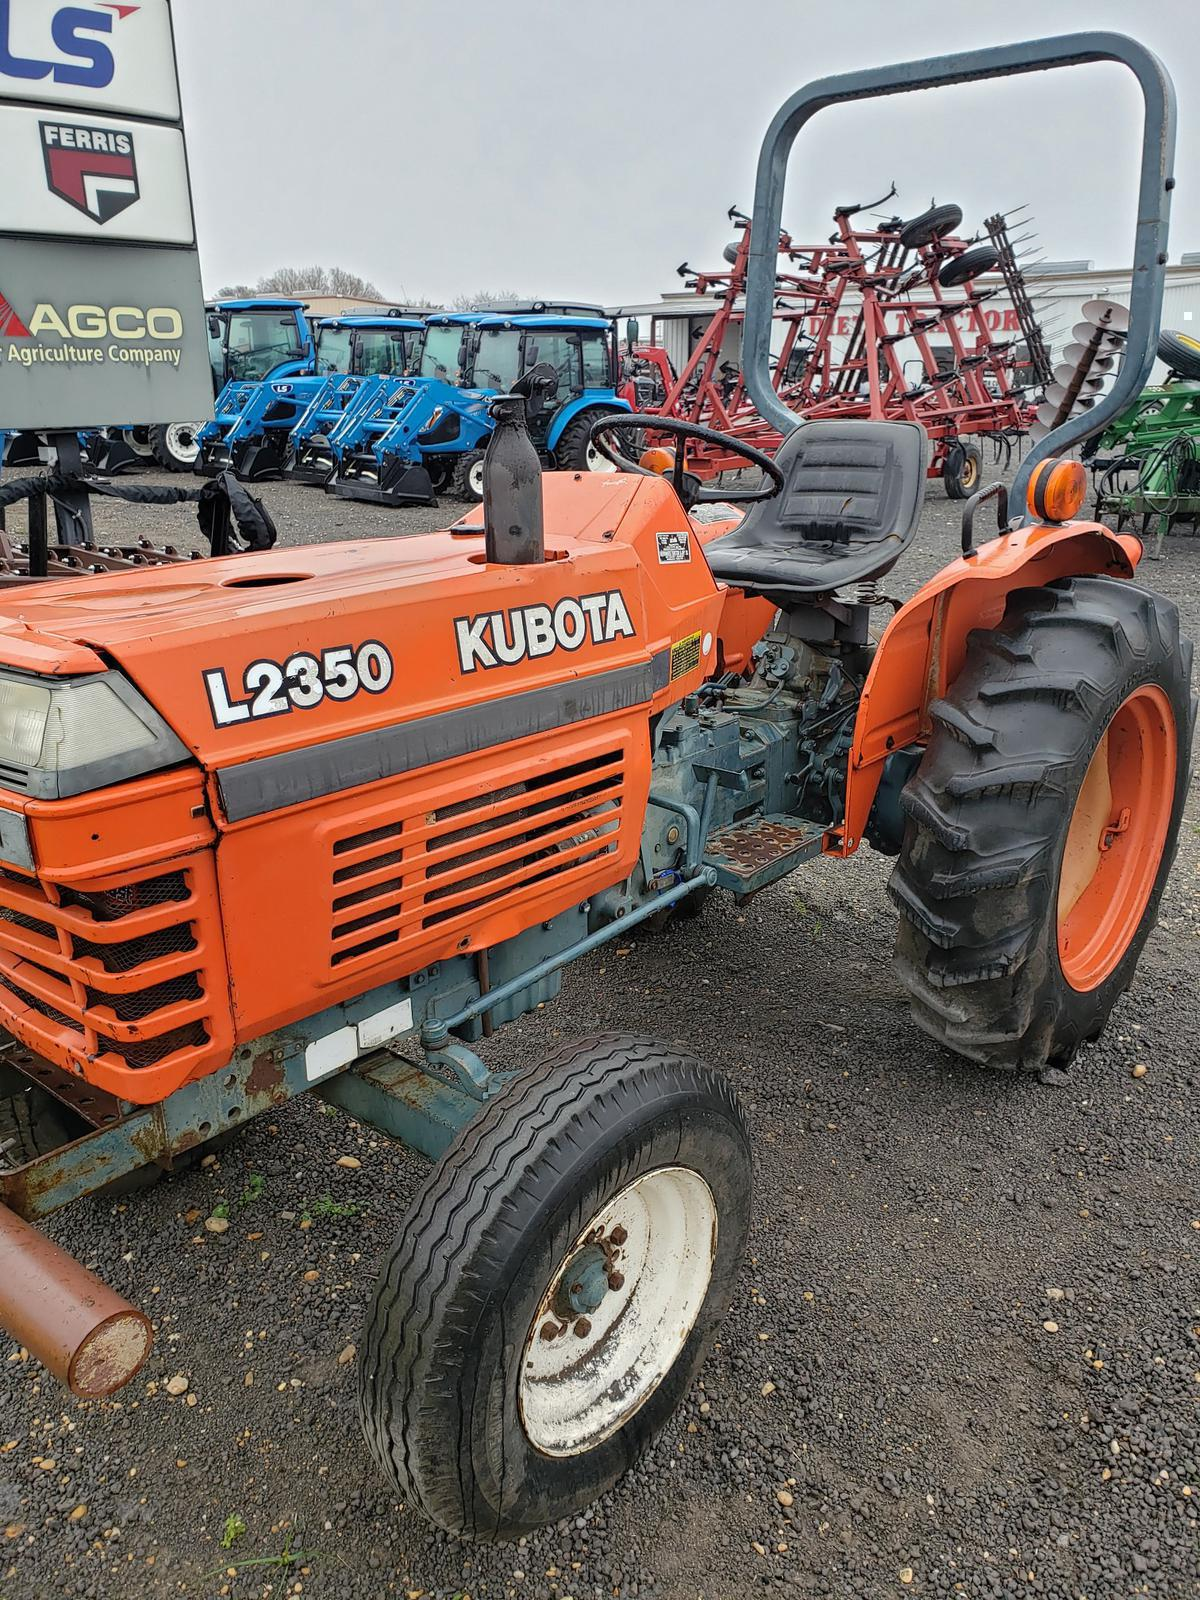 Inventory from Krause, Mahindra, Shaver, Hesston, LS Tractor